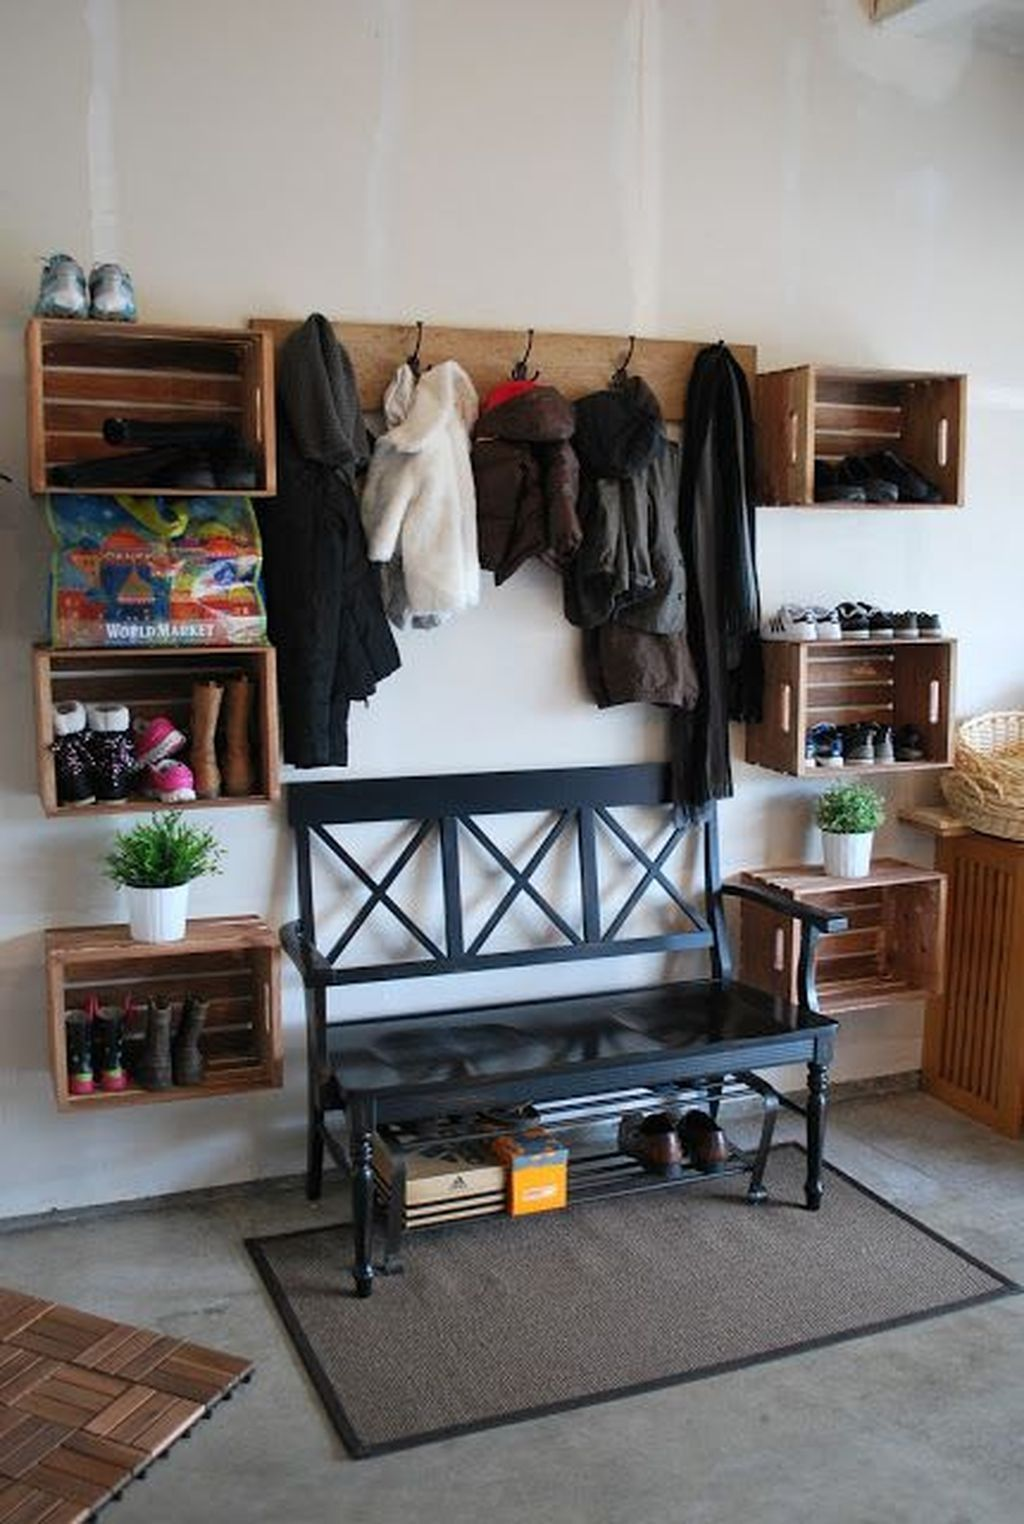 30 awesome mudroom entryway decorating ideas mud room on new garage organization ideas on a budget a little imagination id=46903